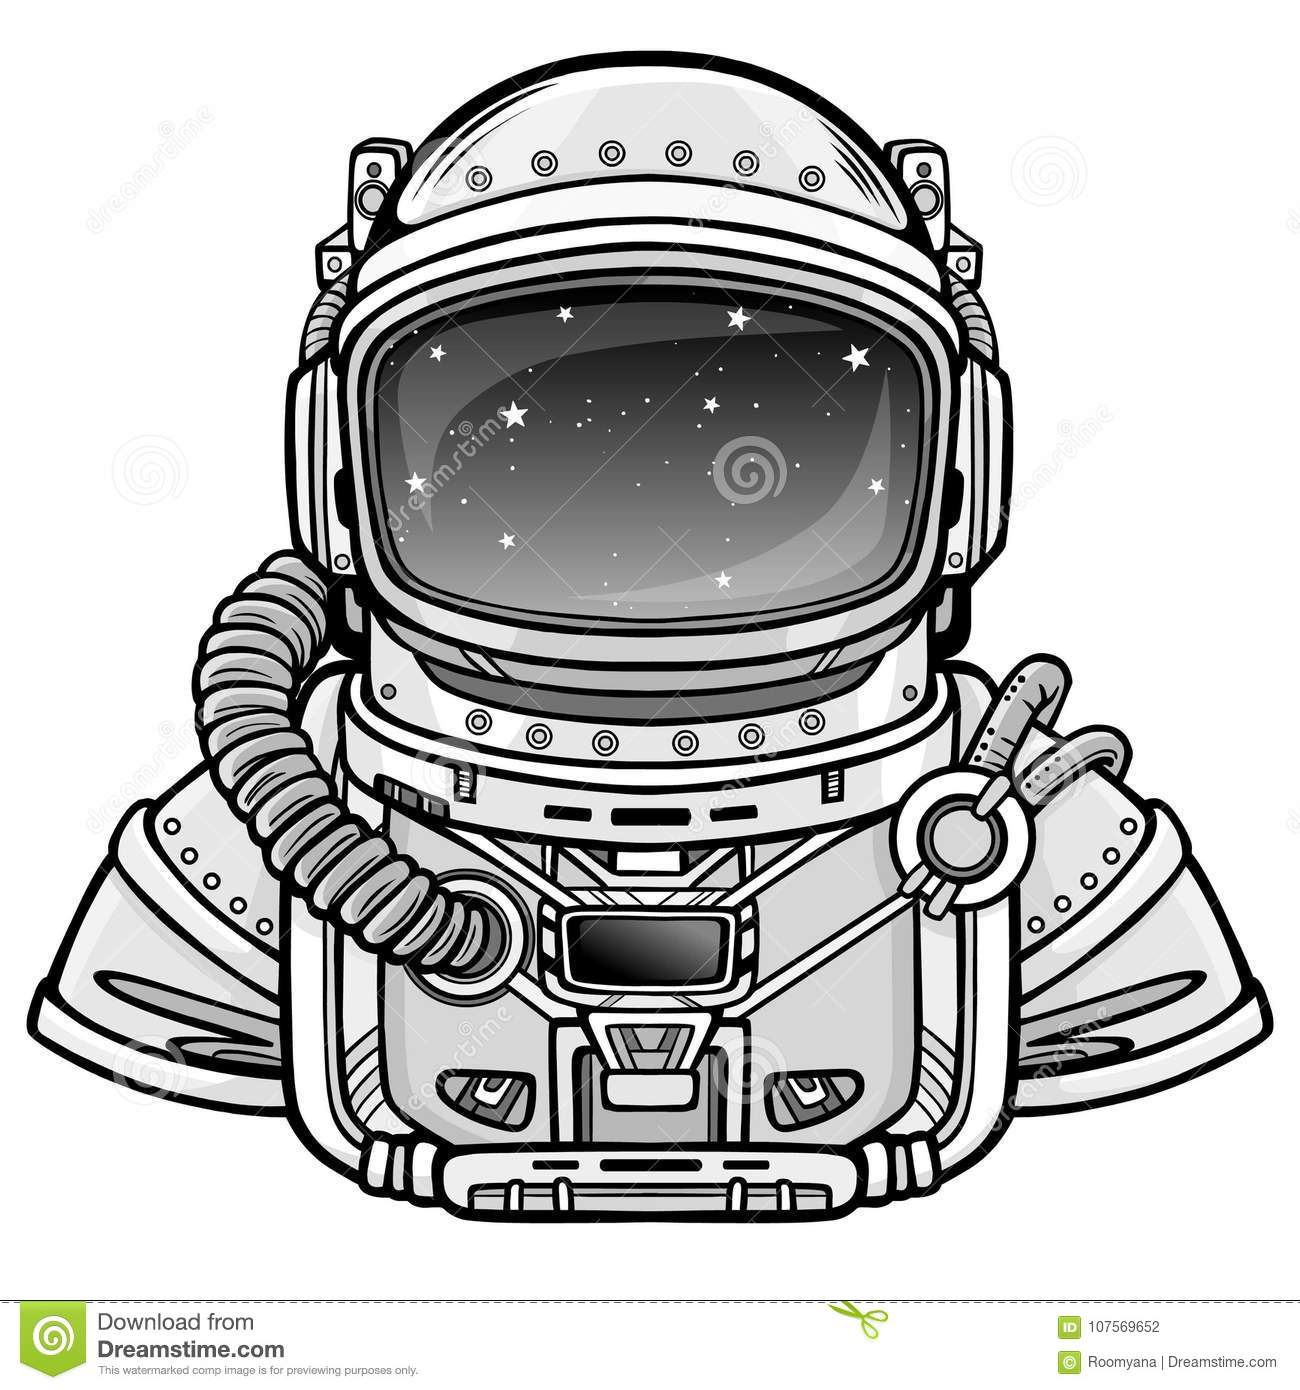 Animation Astronaut In A Space Suit. Stock Vector